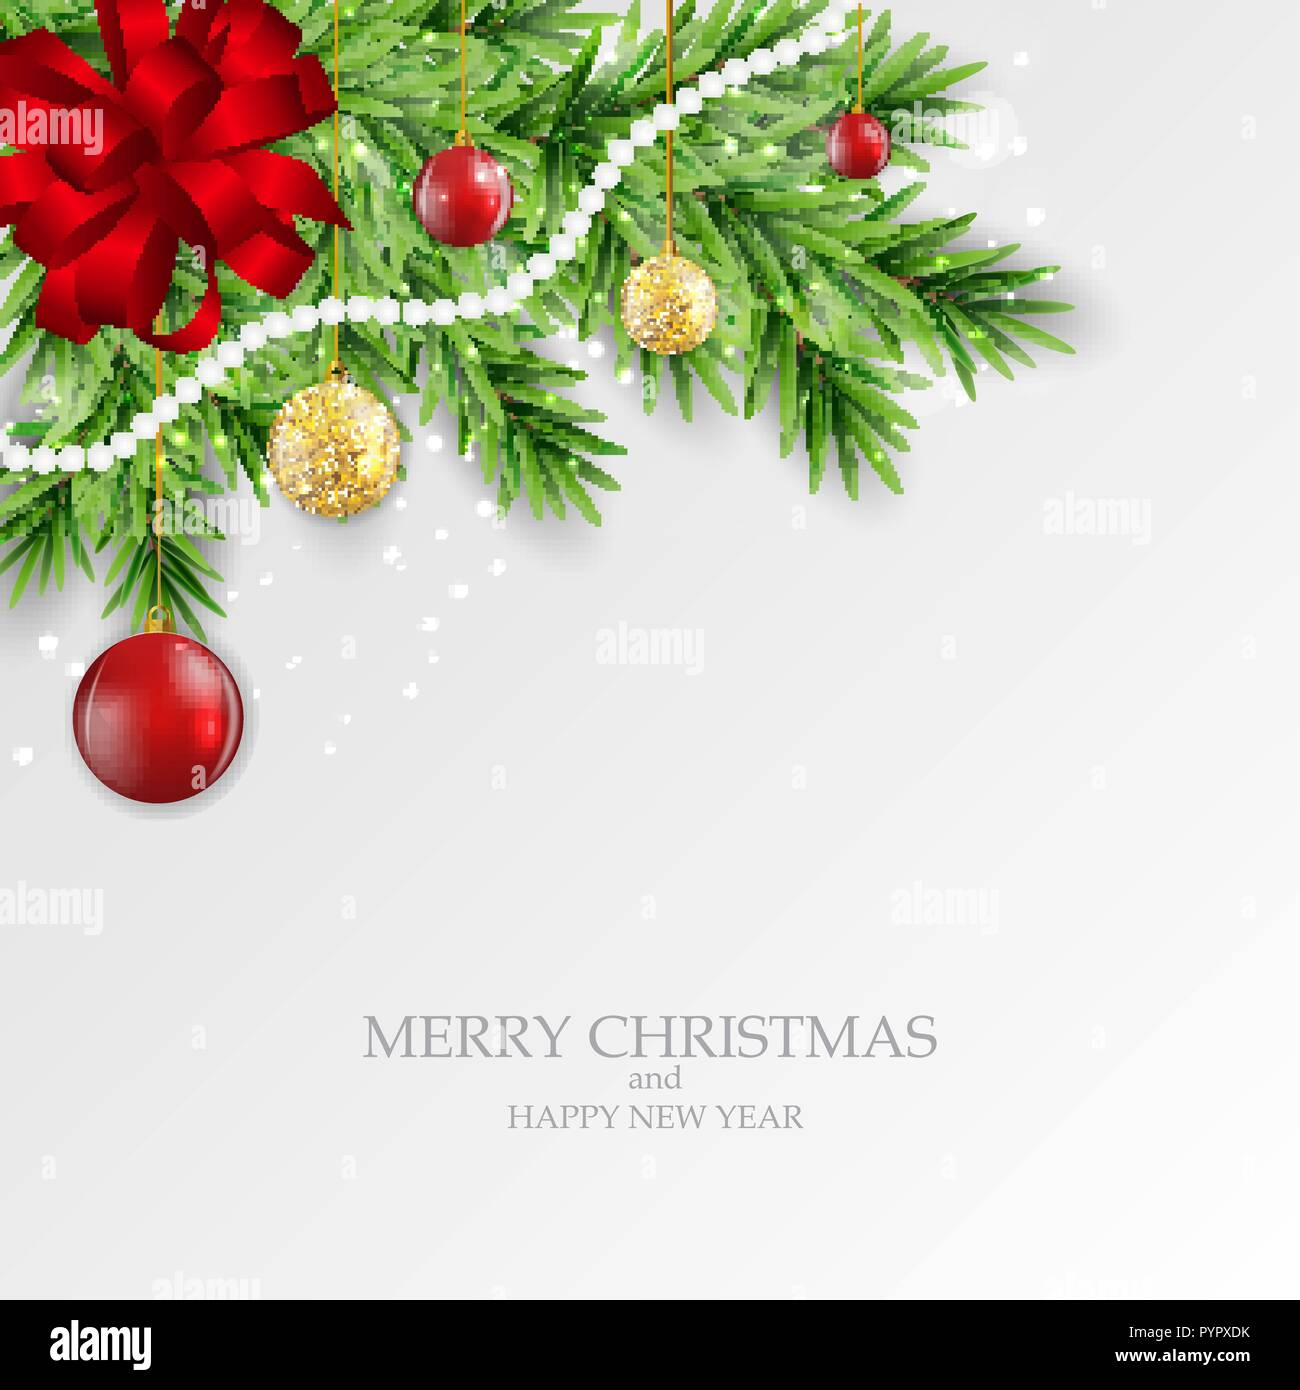 abstract holiday new year and merry christmas background vector illustration